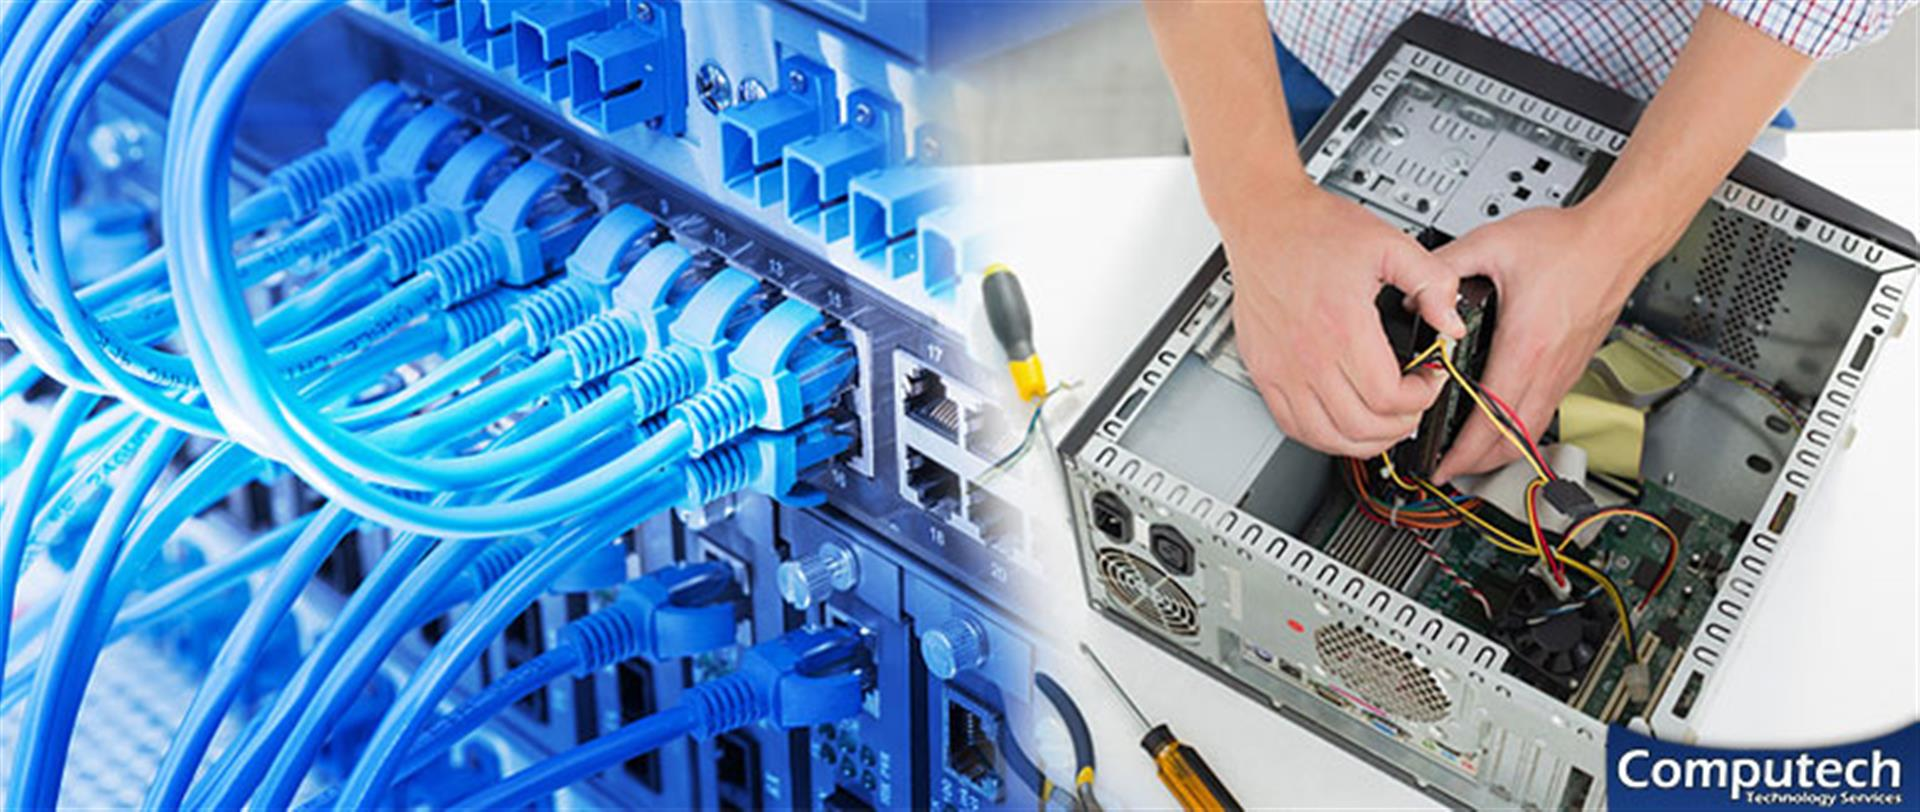 Perry Georgia On Site PC & Printer Repairs, Networks, Voice & Data Cabling Services